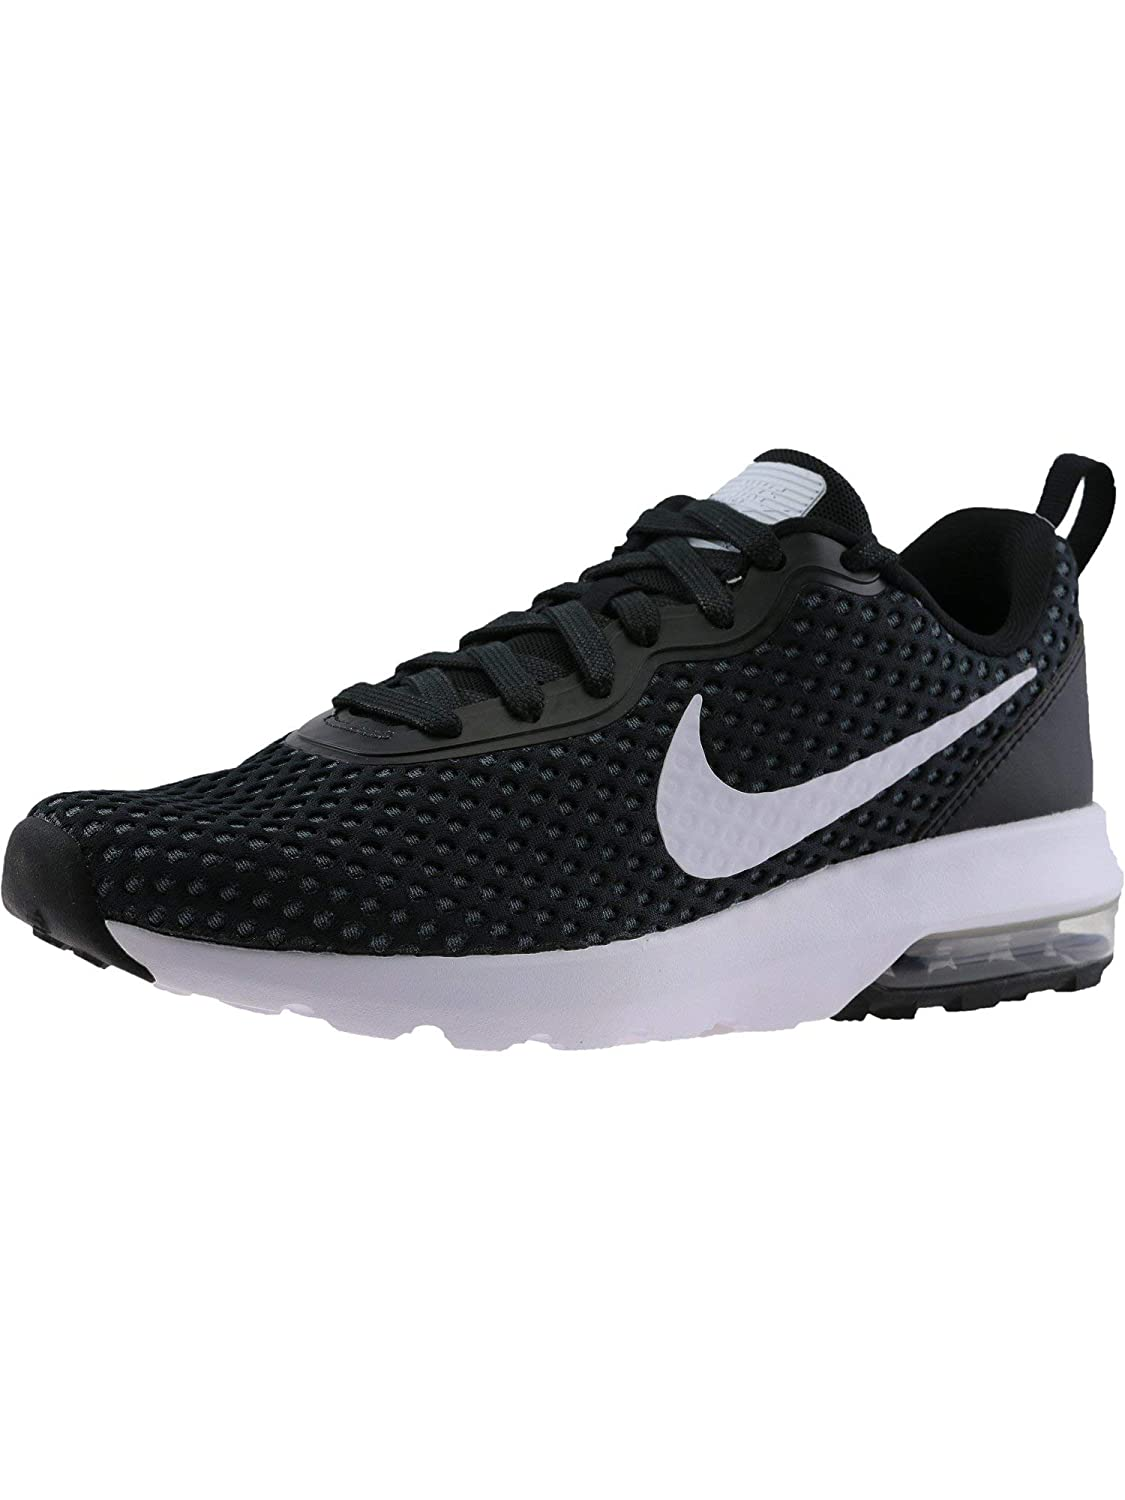 Men's Nike Air Max Turbulence NA Sneakers Athletic Shoes